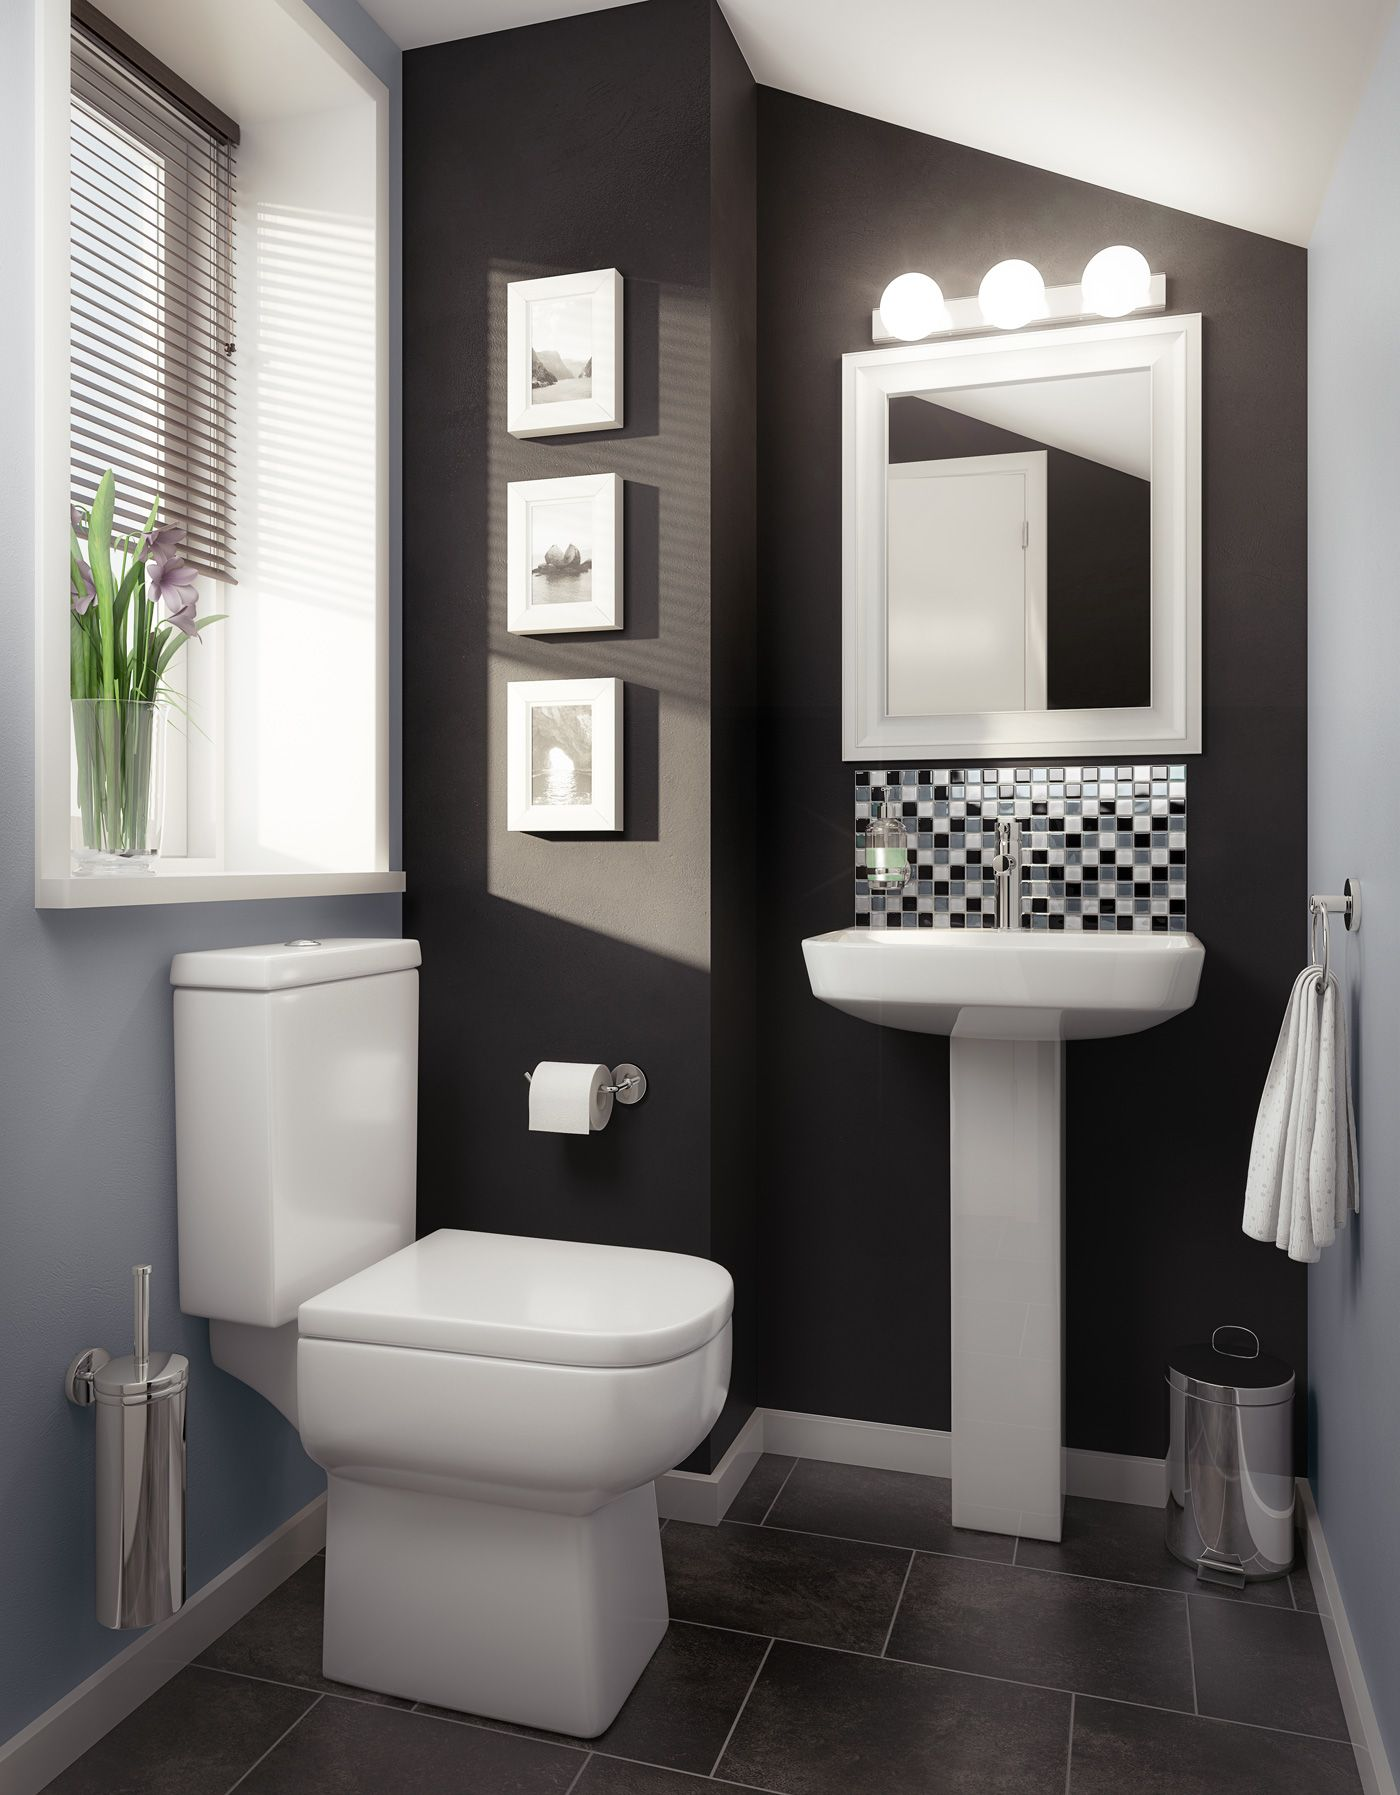 Making The Most Of A Small Bathroom. How To Make The Most Out Of A ...